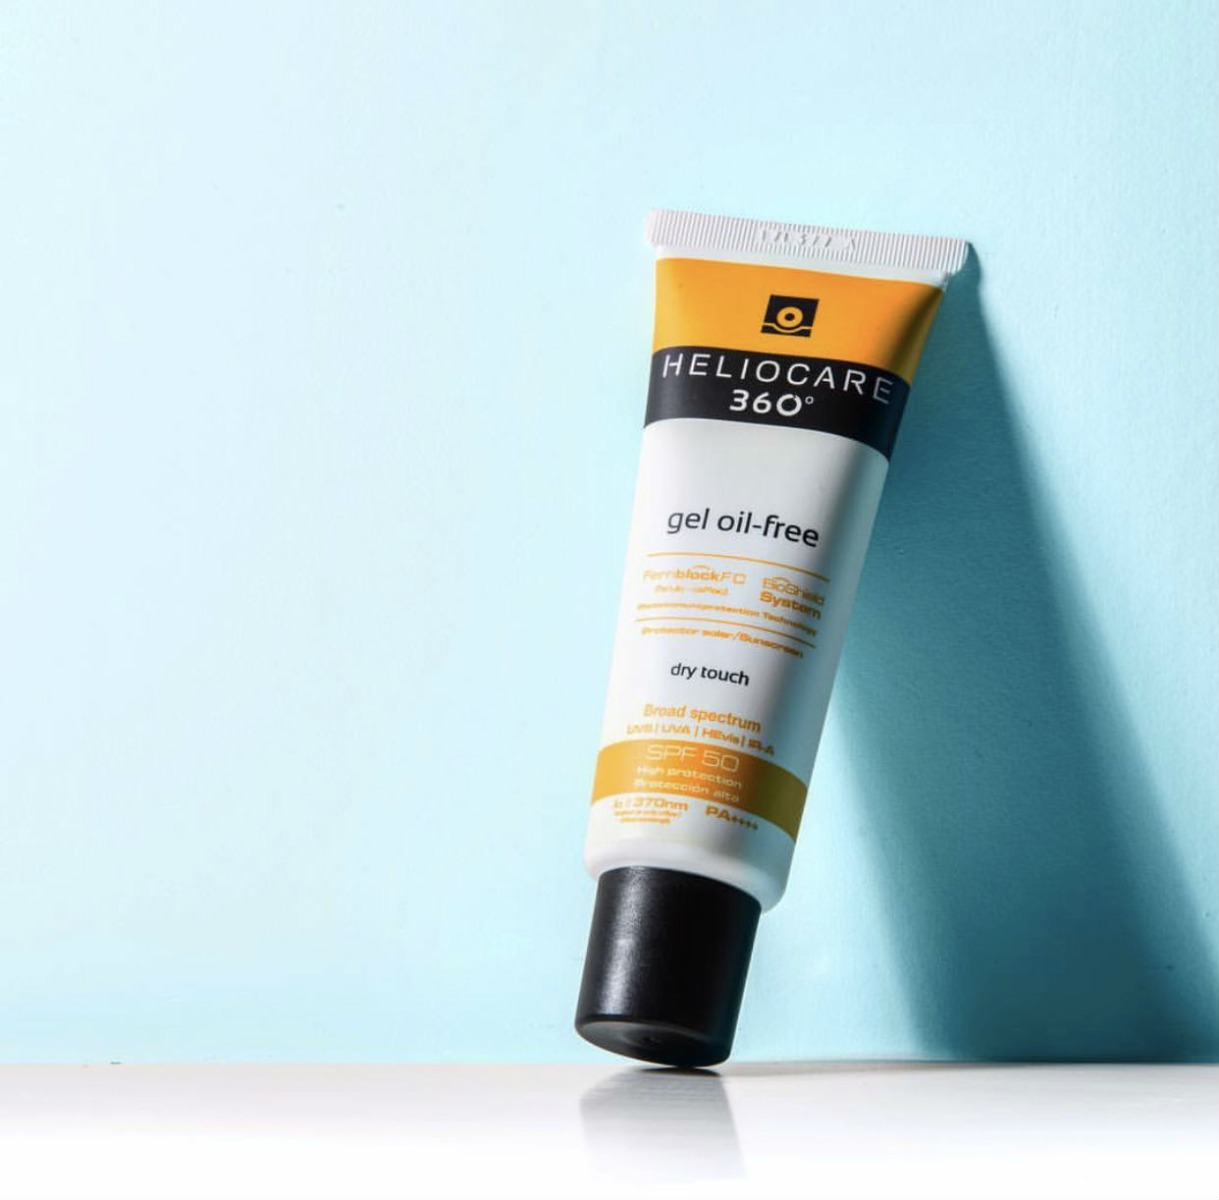 Heliocare 360 Oil Free Dry Touch Gel